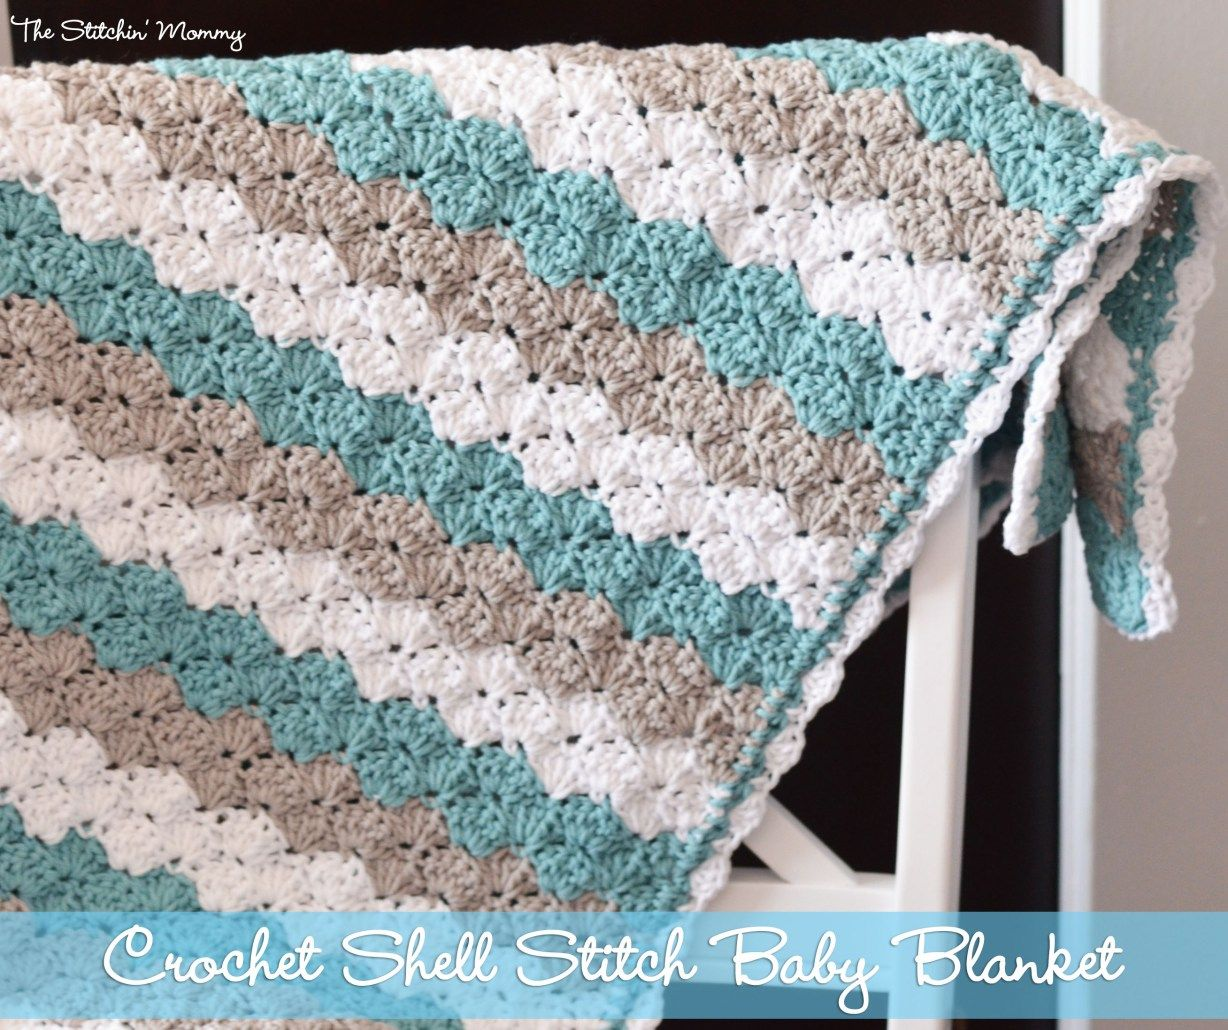 Shell stitch baby blanket free pattern crochet shell stitch crochet shell stitch baby blanket by the stitchin mommy thestitchinmommy bankloansurffo Choice Image